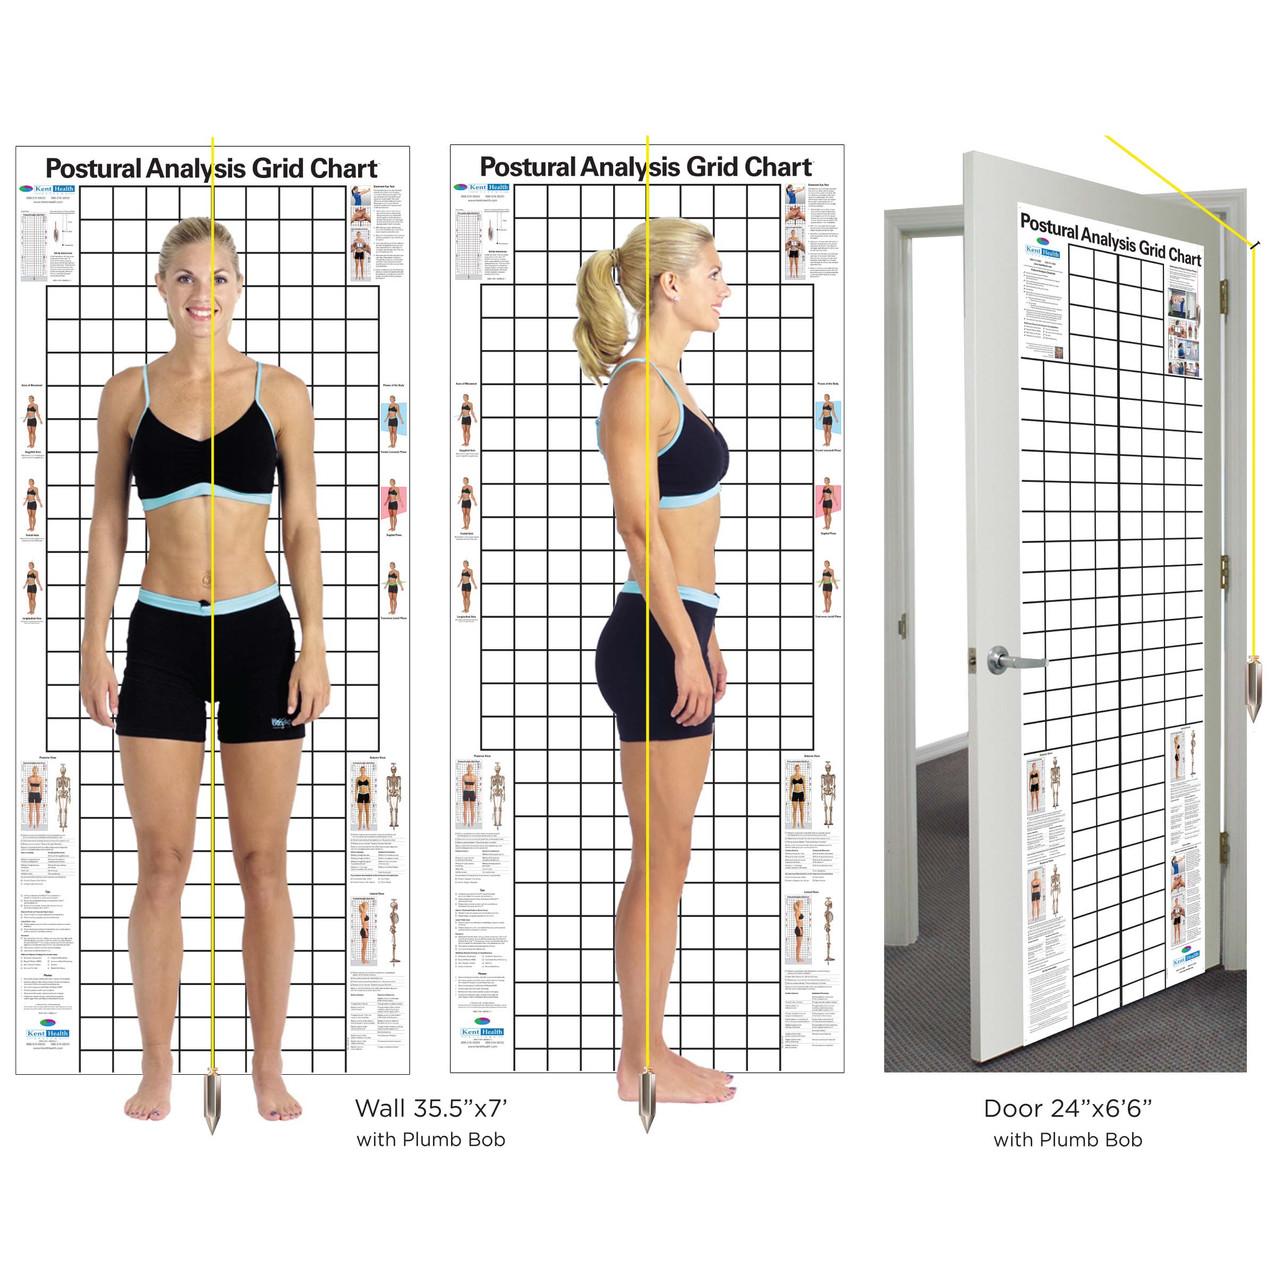 Posture-Chart-Wall-and-Door-Sizes-with-P